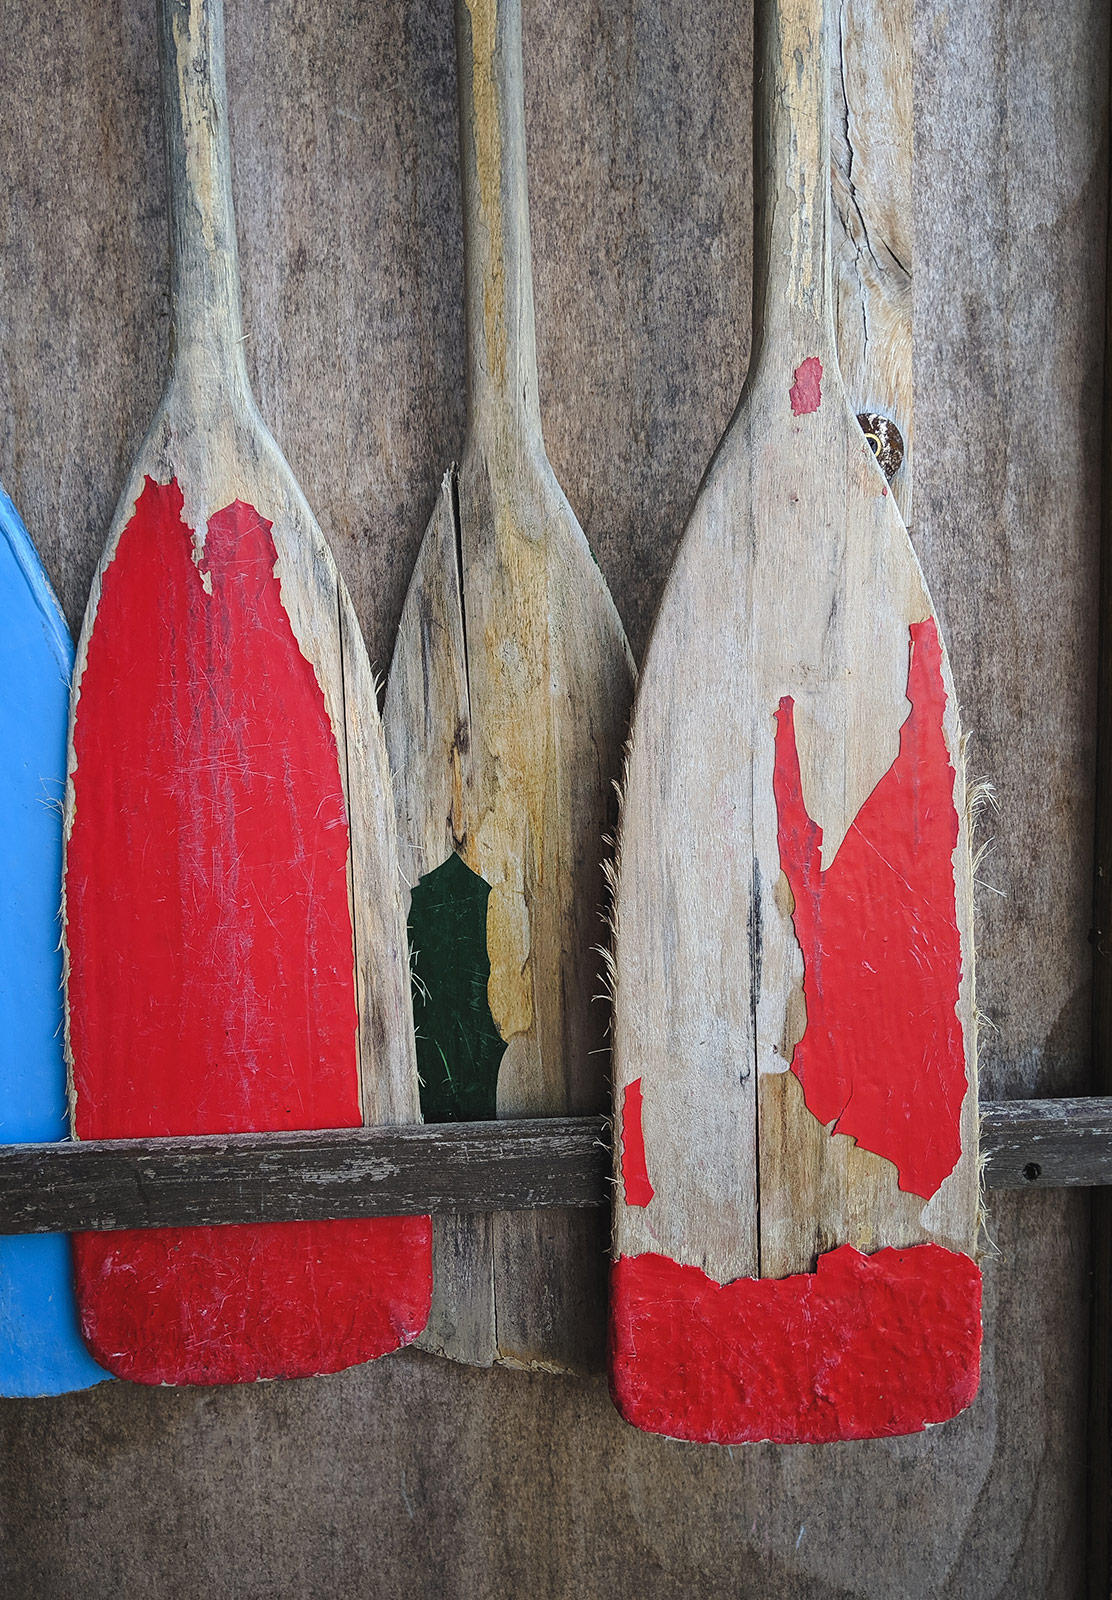 Old painted wooden paddles